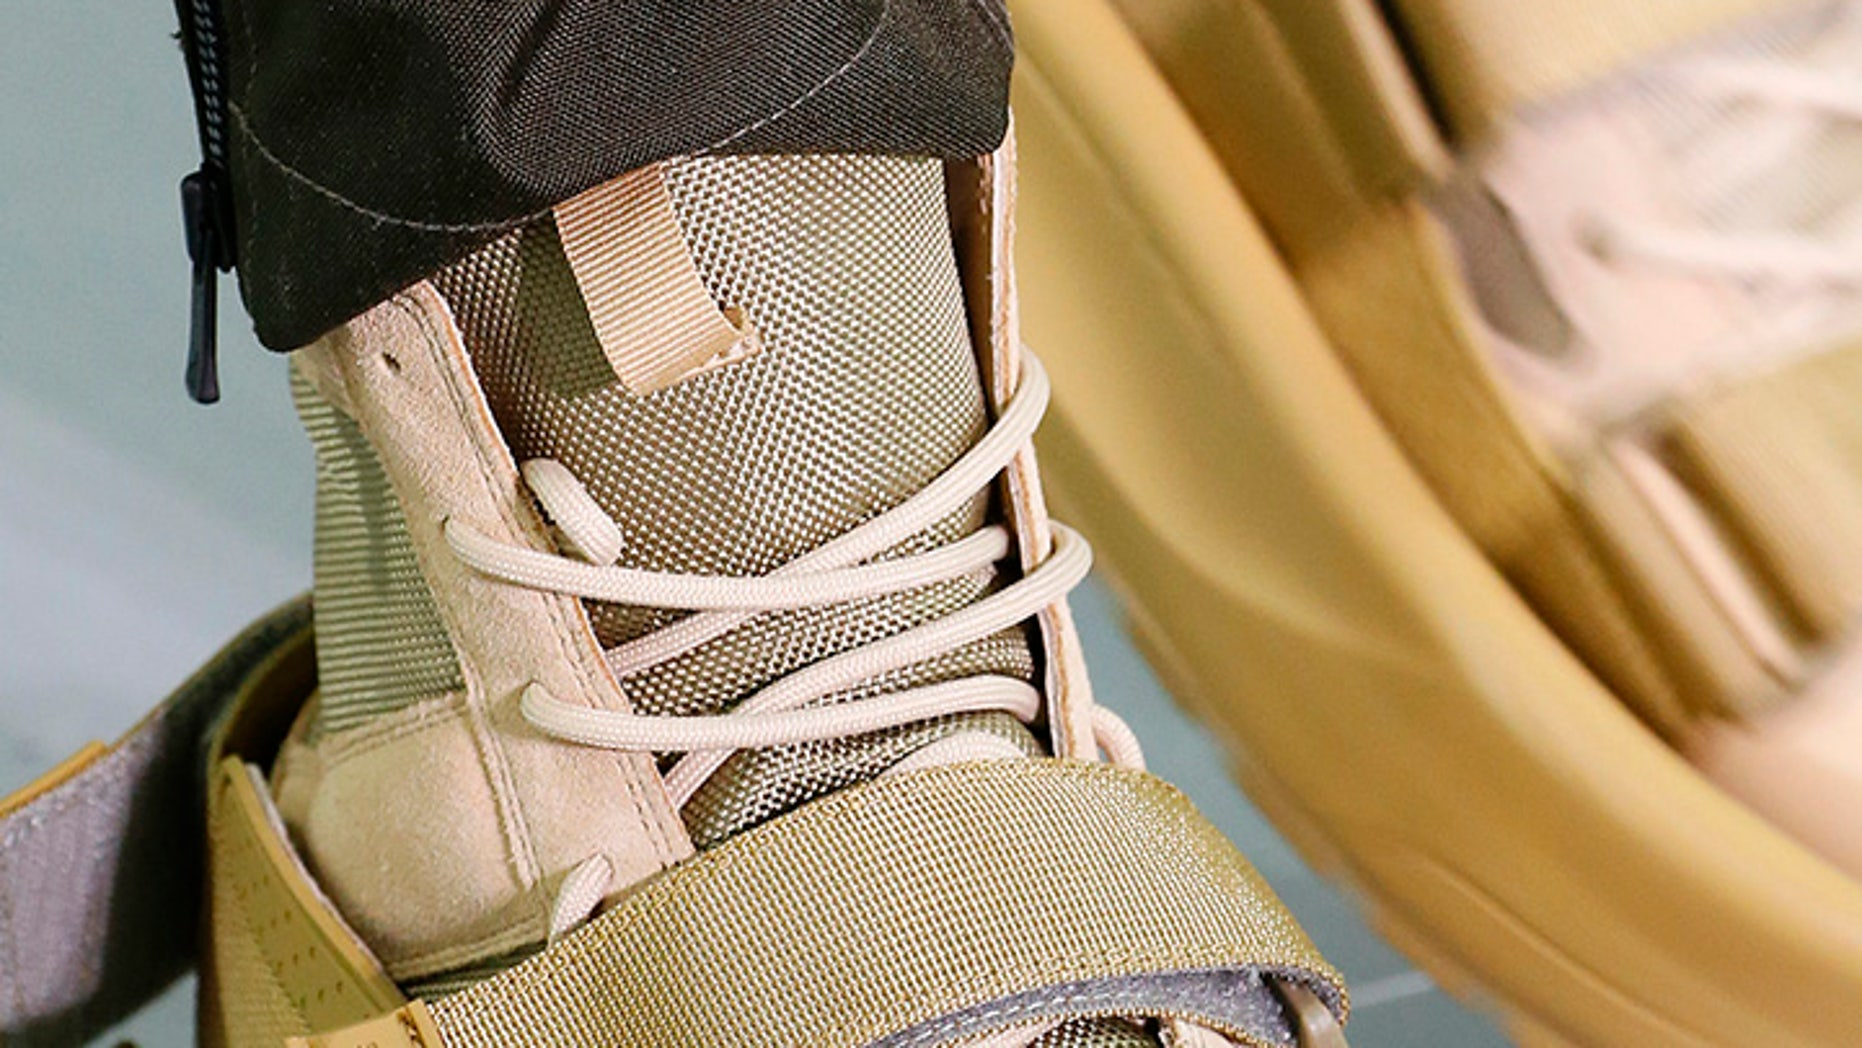 Sankuanz, a Chinese fashion brand, debuted the sandal-like coverings designed to be worn over shoes.